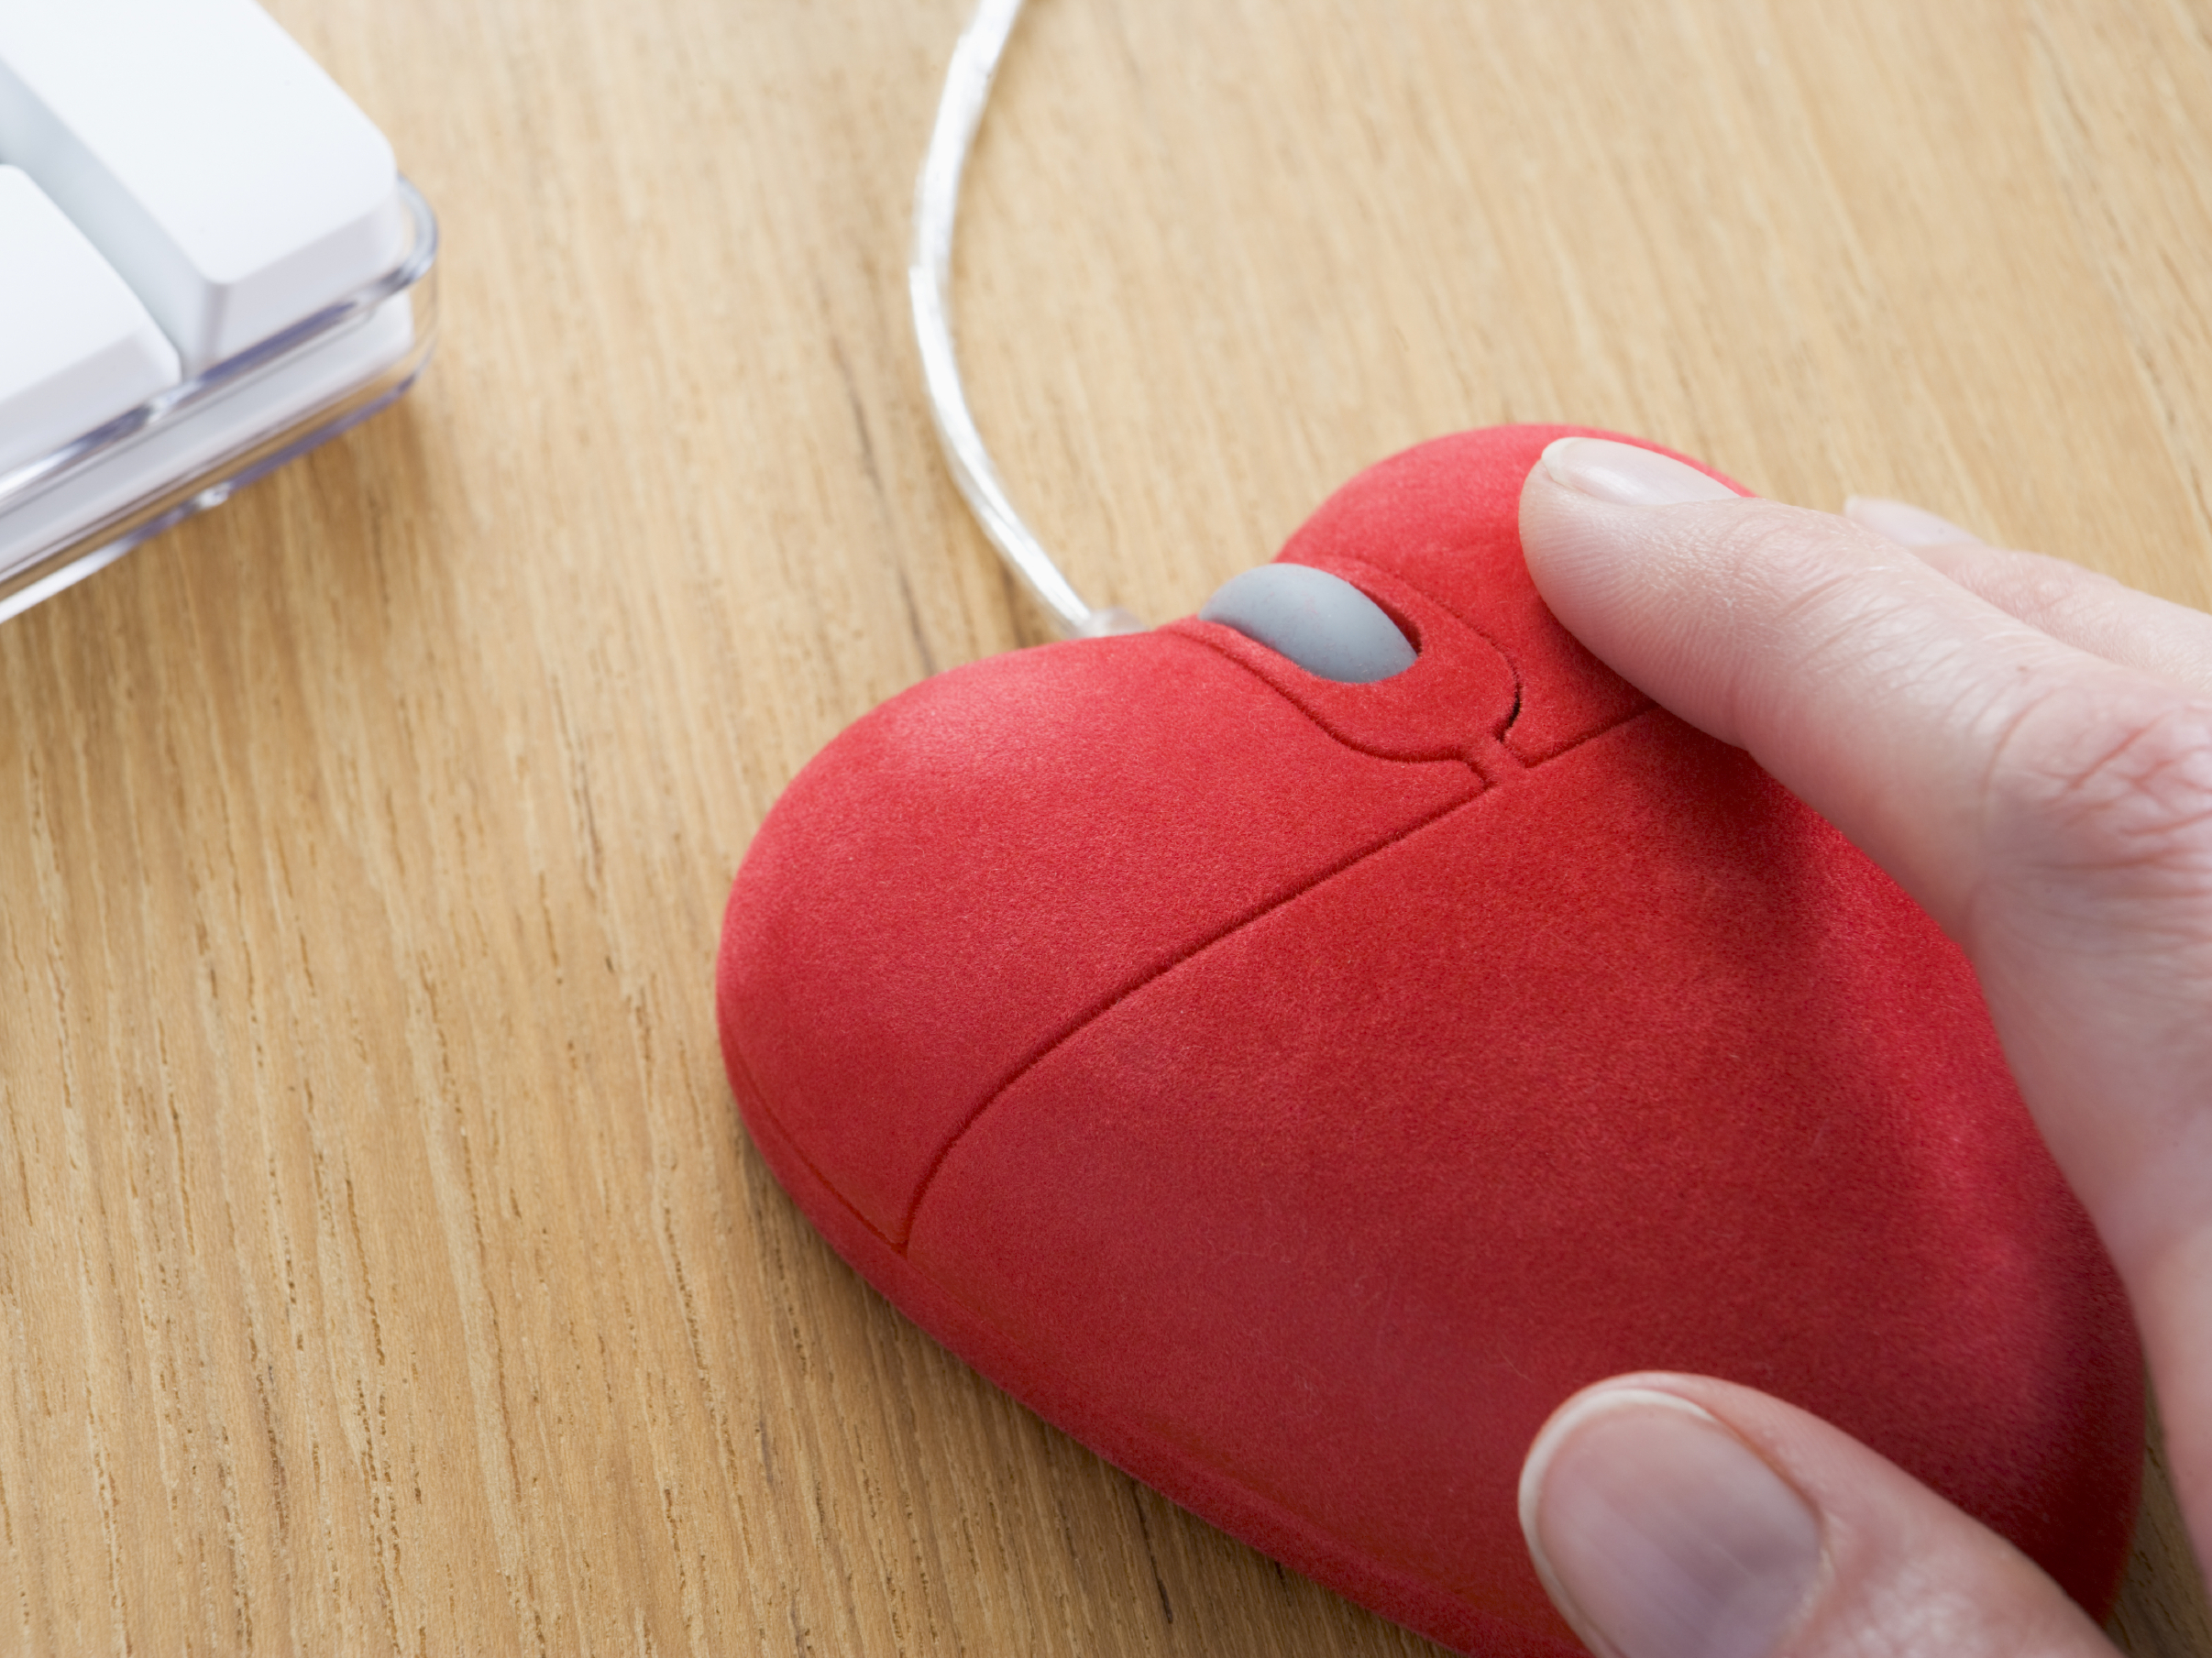 Online Dating Is On The Rise (But There Are Still Haters)